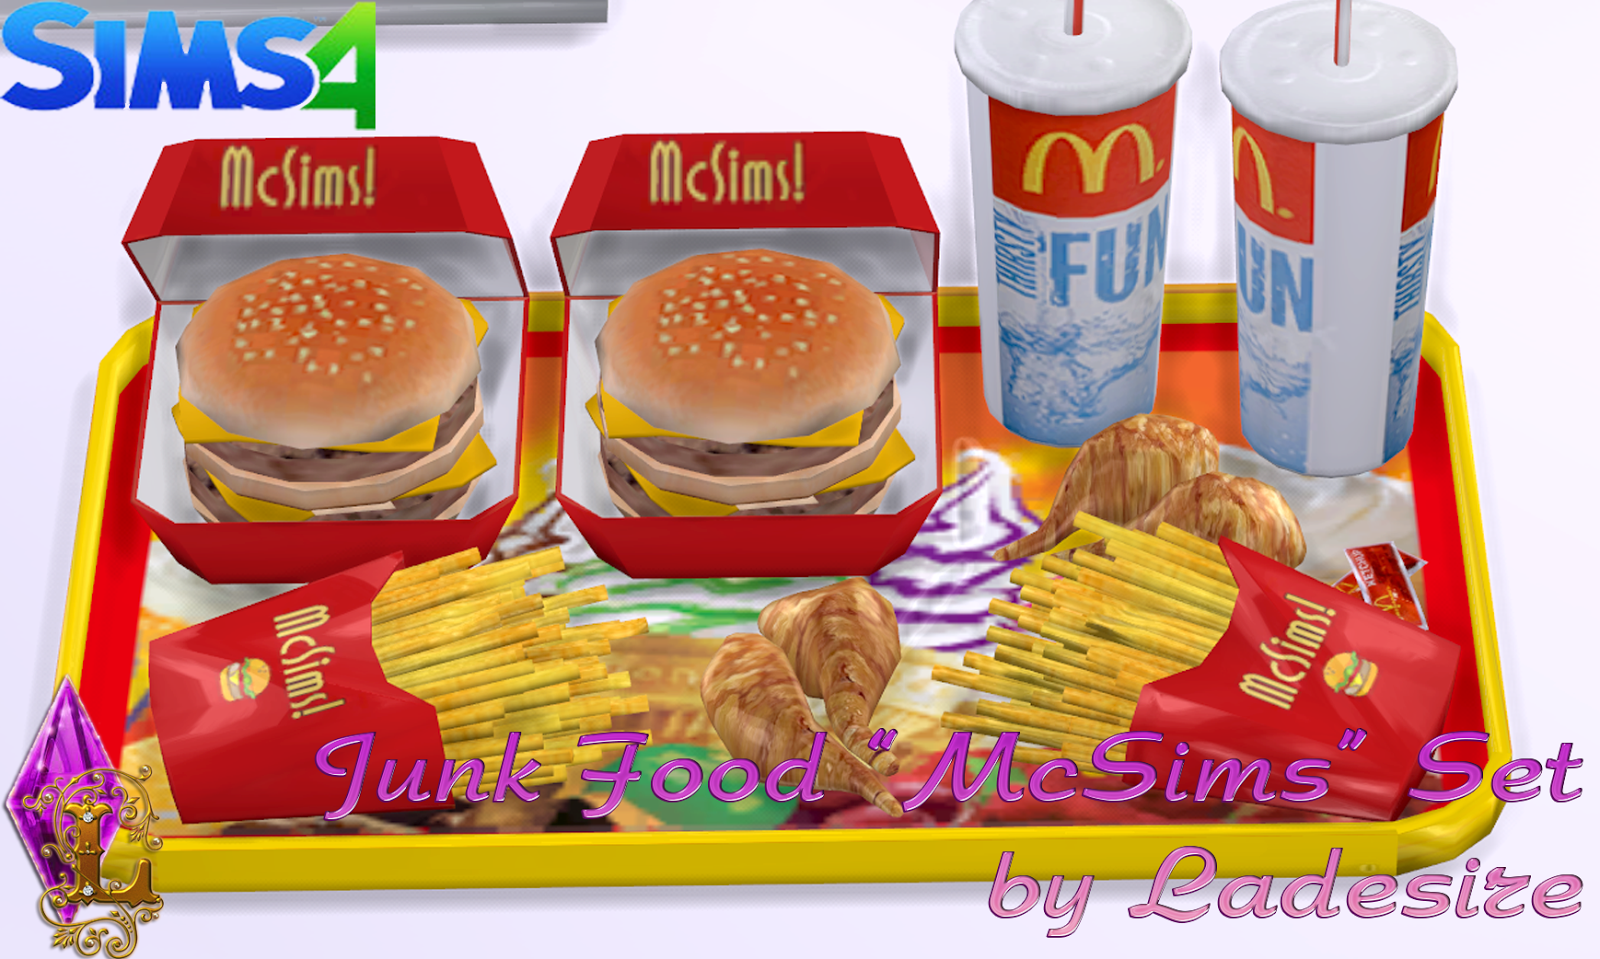 Ladesire S Creative Corner Ts4 Quot Mcsims Junk Food Quot By Ladesire